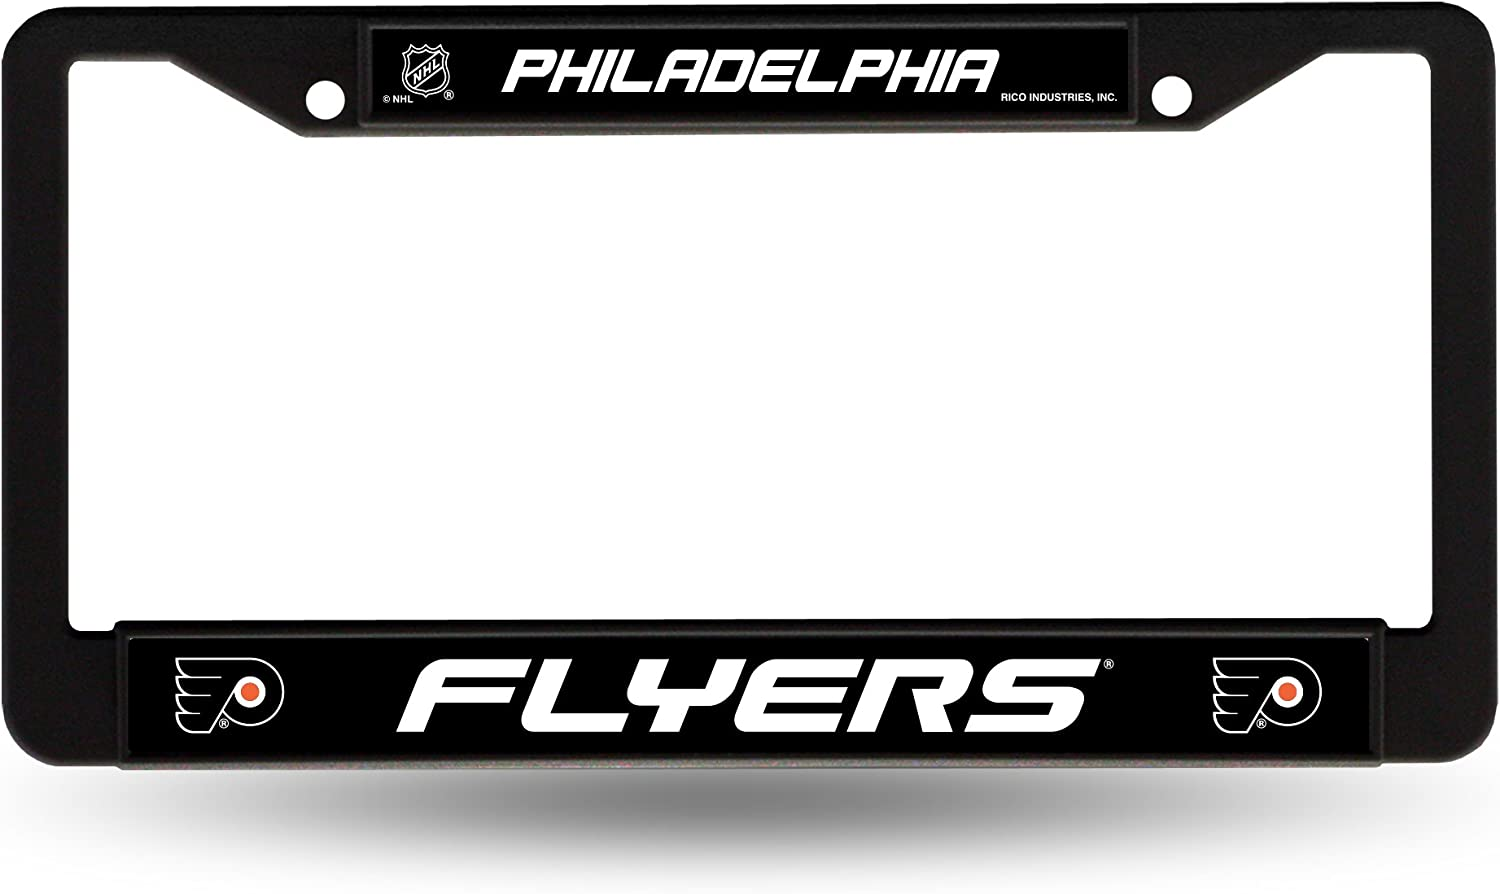 6 x 12.25 NHL Pittsburgh Penguins Laser Cut Inlaid Standard Chrome License Plate Frame Black